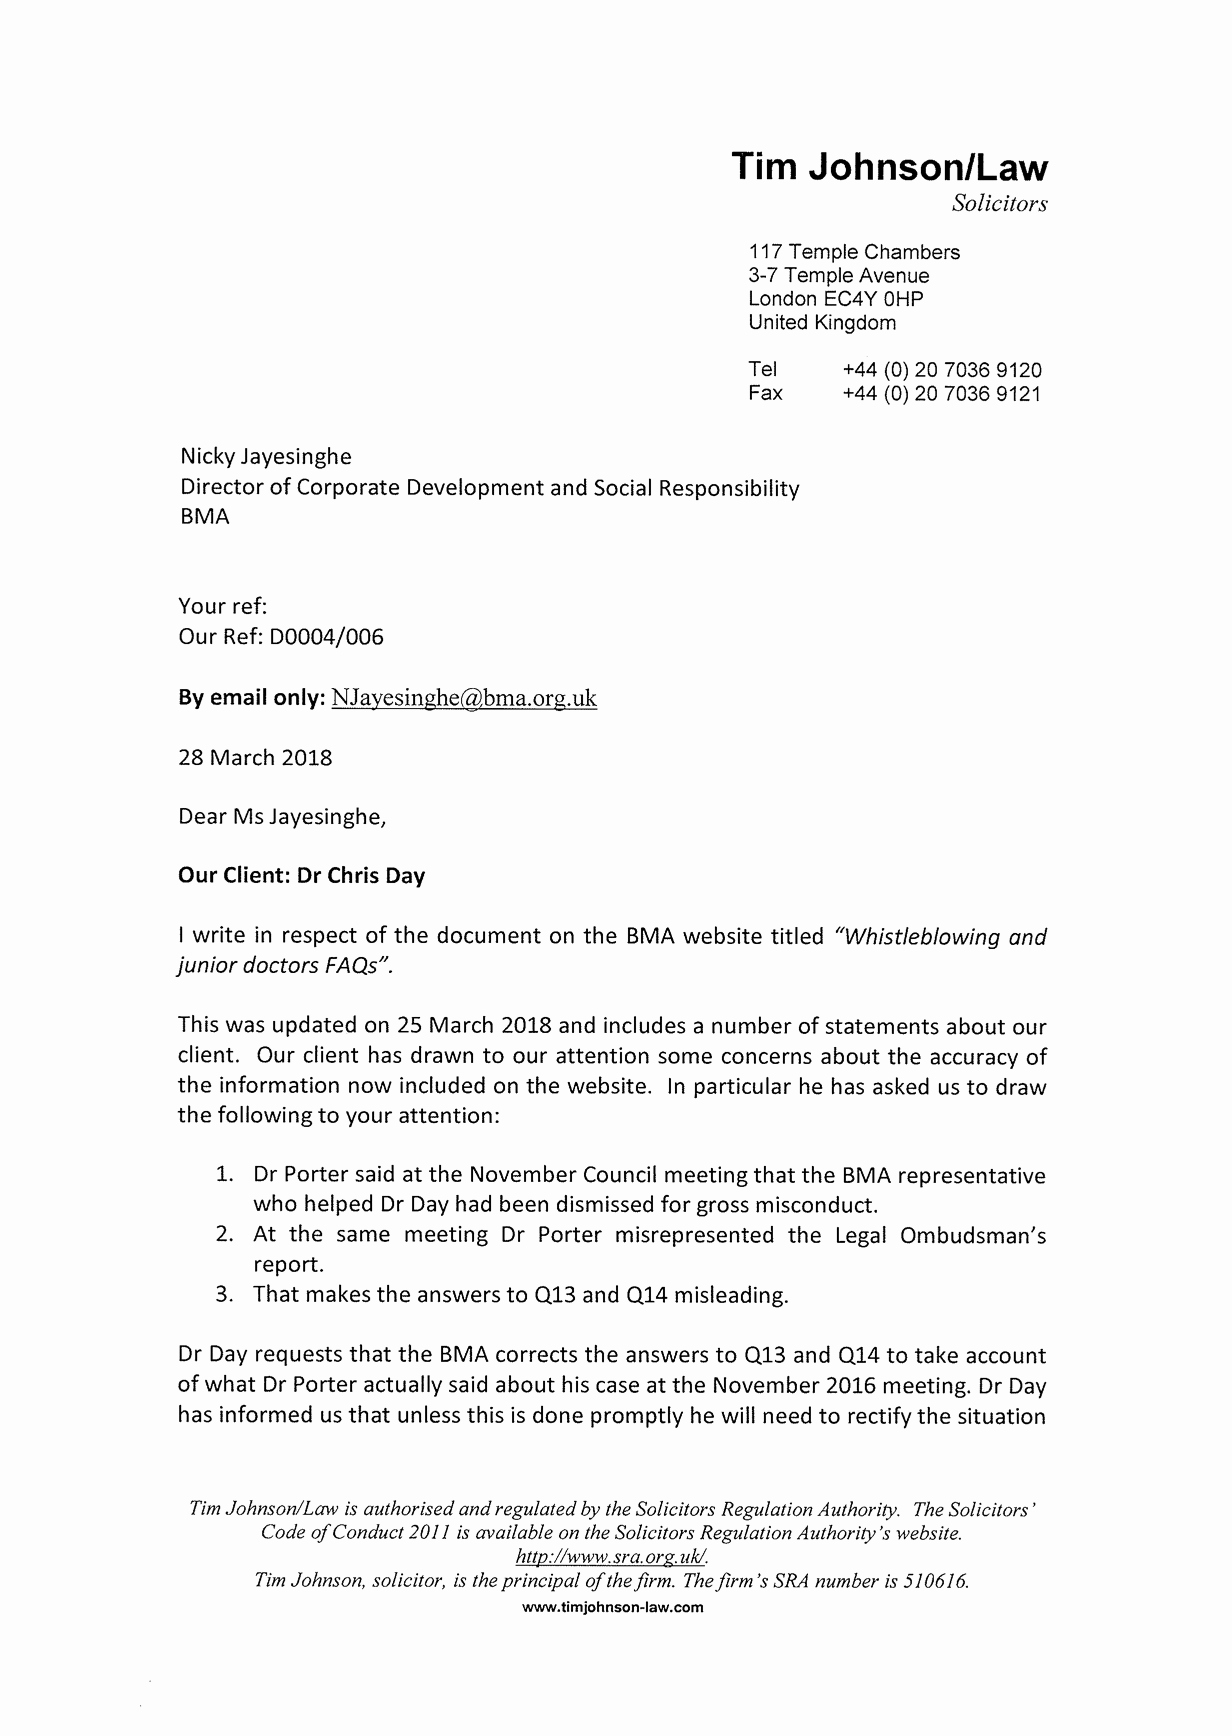 Legal Covering Letters Samples Awesome Legal Letter Challenging False Statements From the Bma